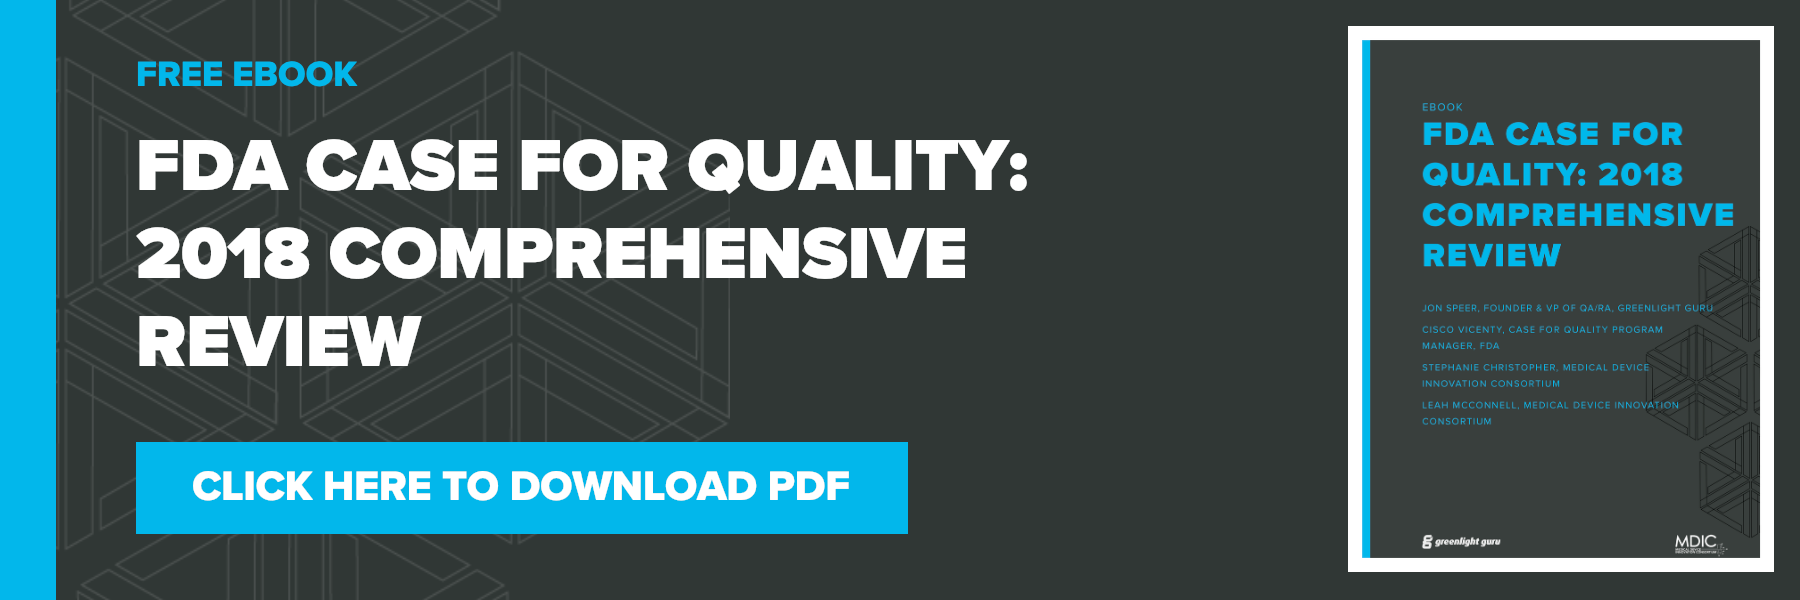 FDA Case for Quality program overview PDF download